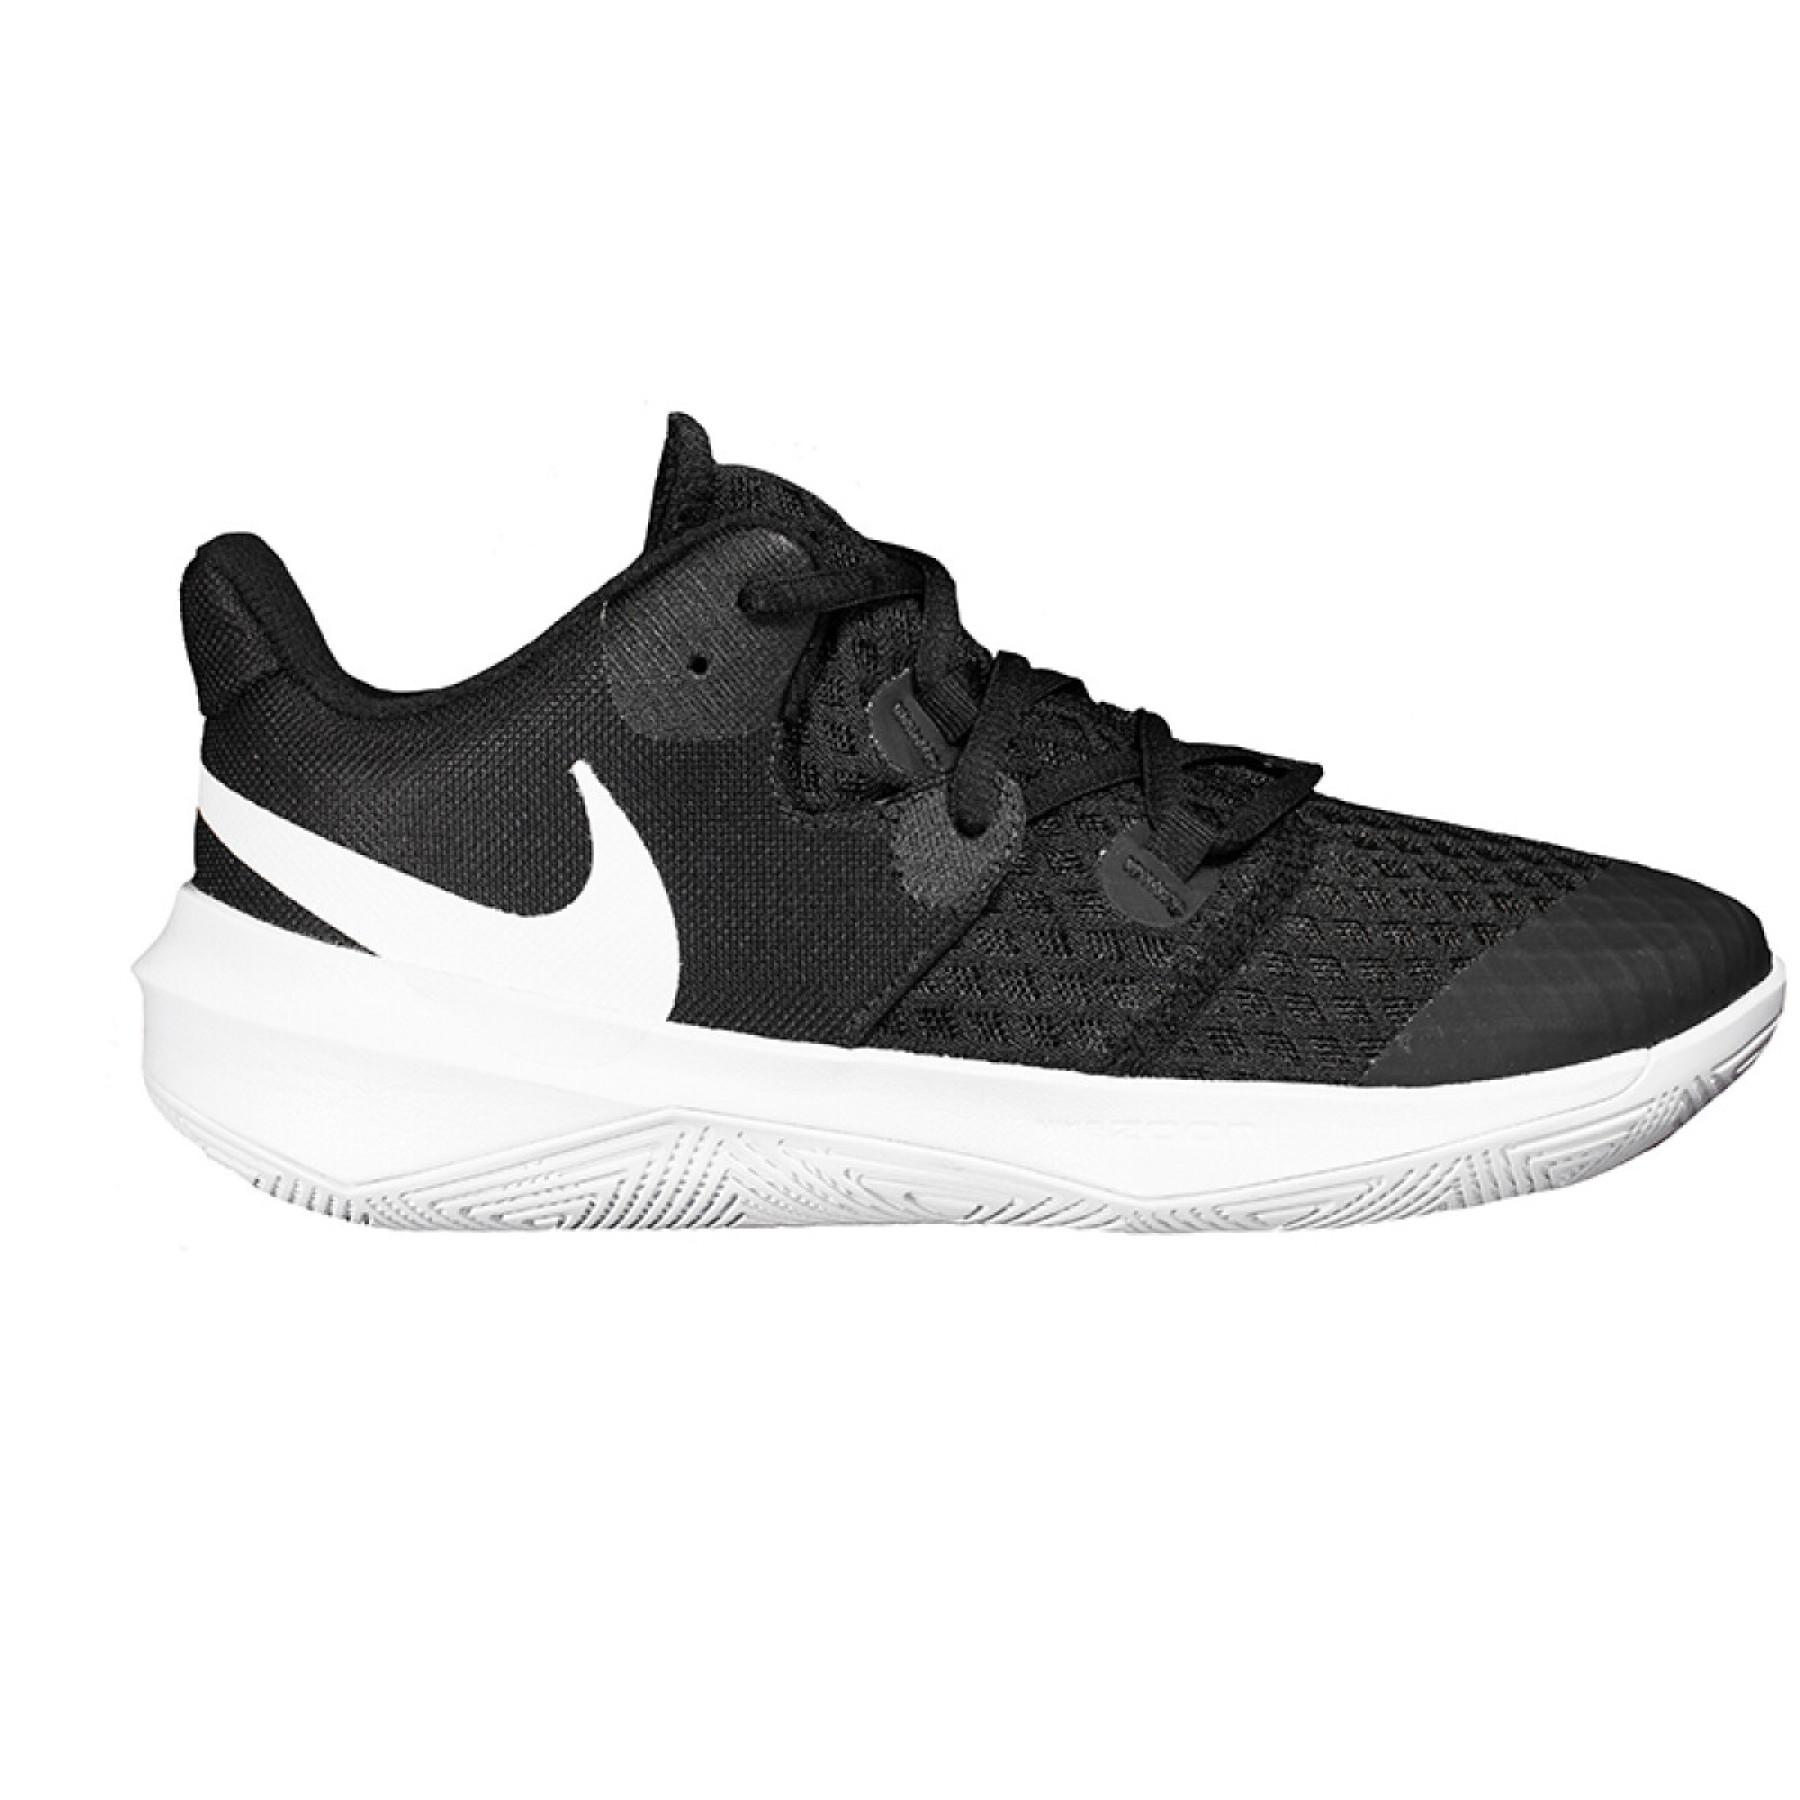 Zapatos Nike Hyperspeed Court